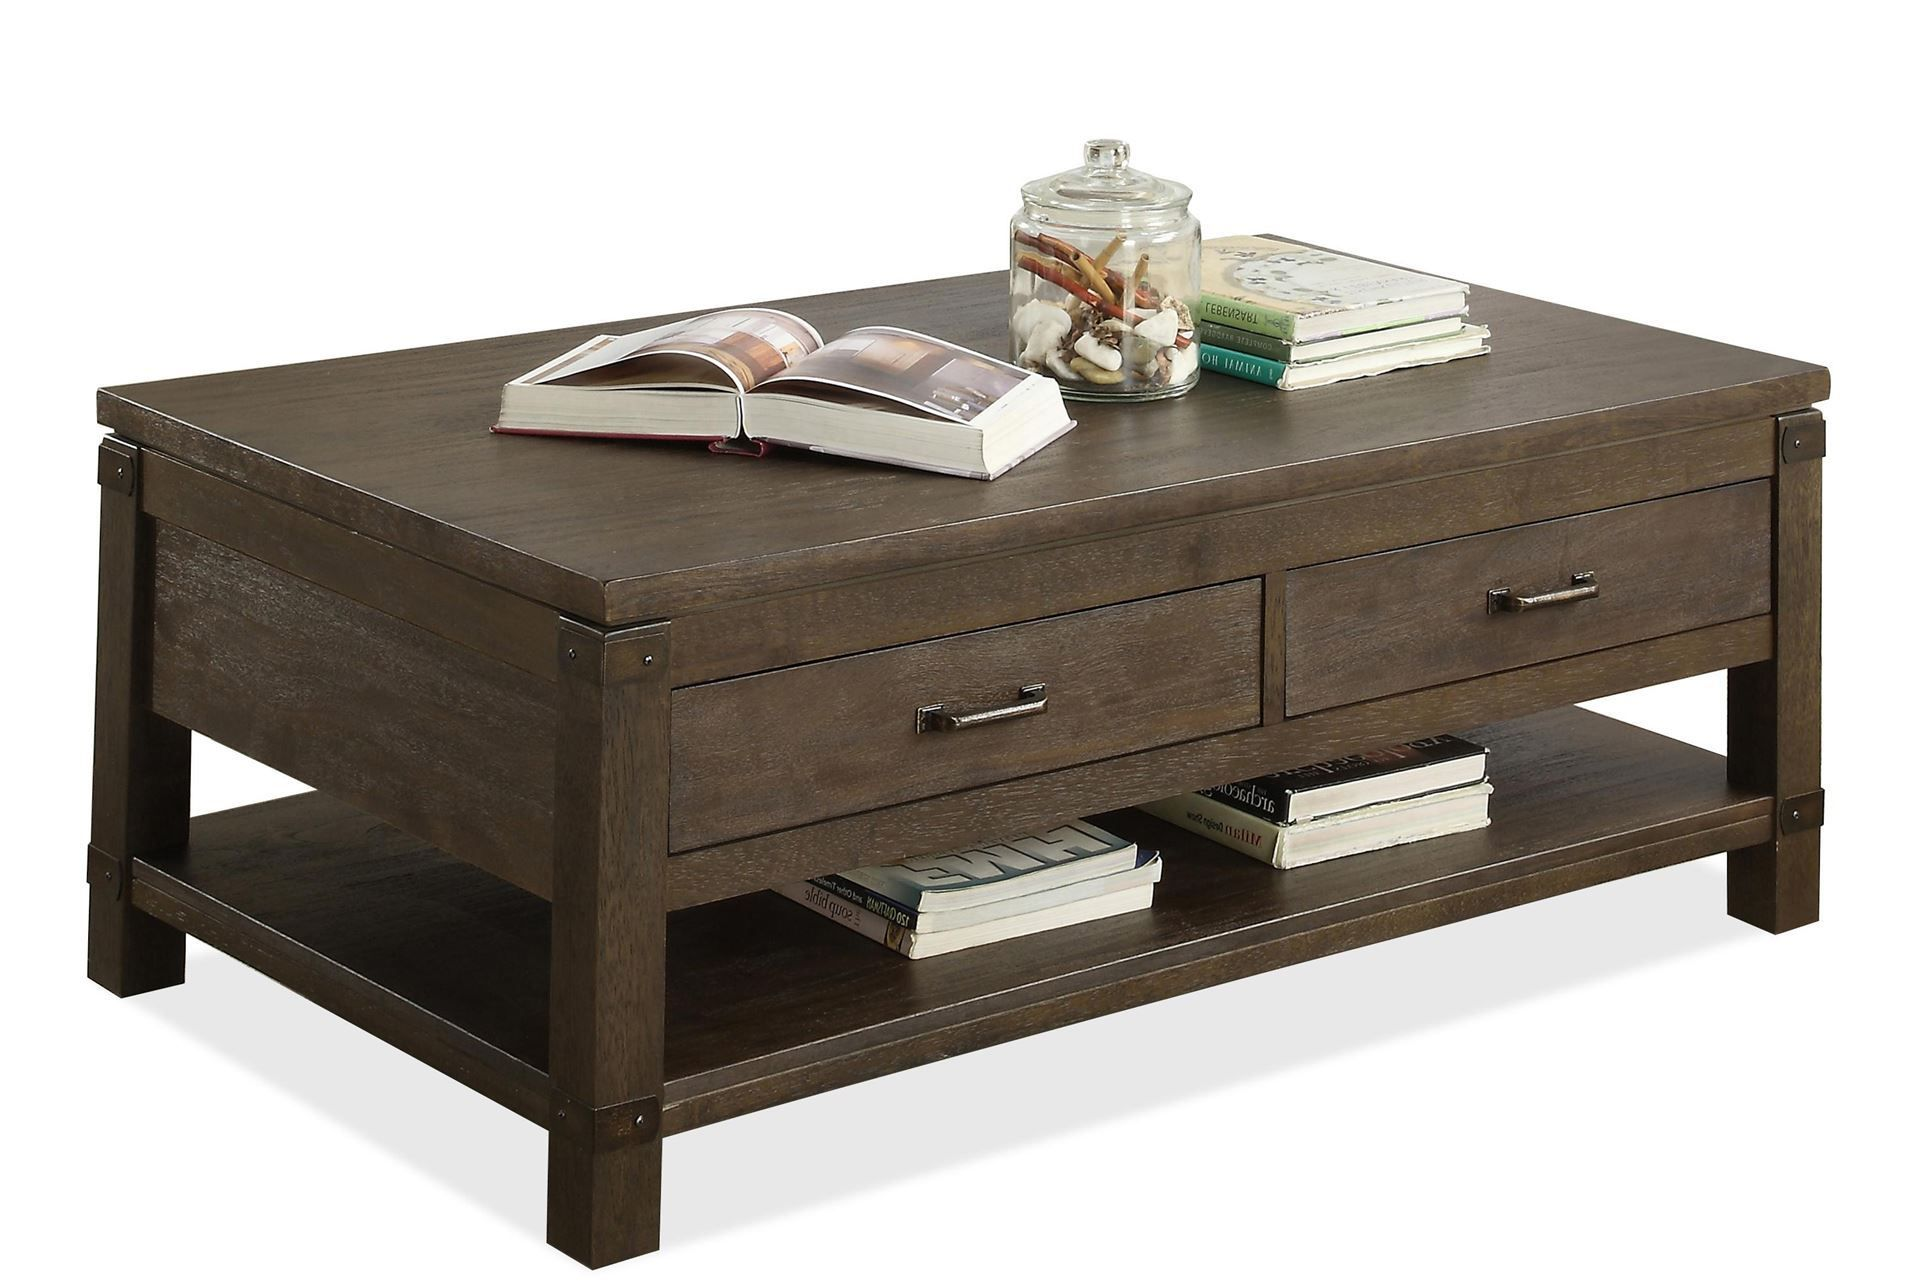 Livingston Coffee Table With Drawers Coffee Table Living Room Furniture Inspiration Furniture [ 1288 x 1911 Pixel ]